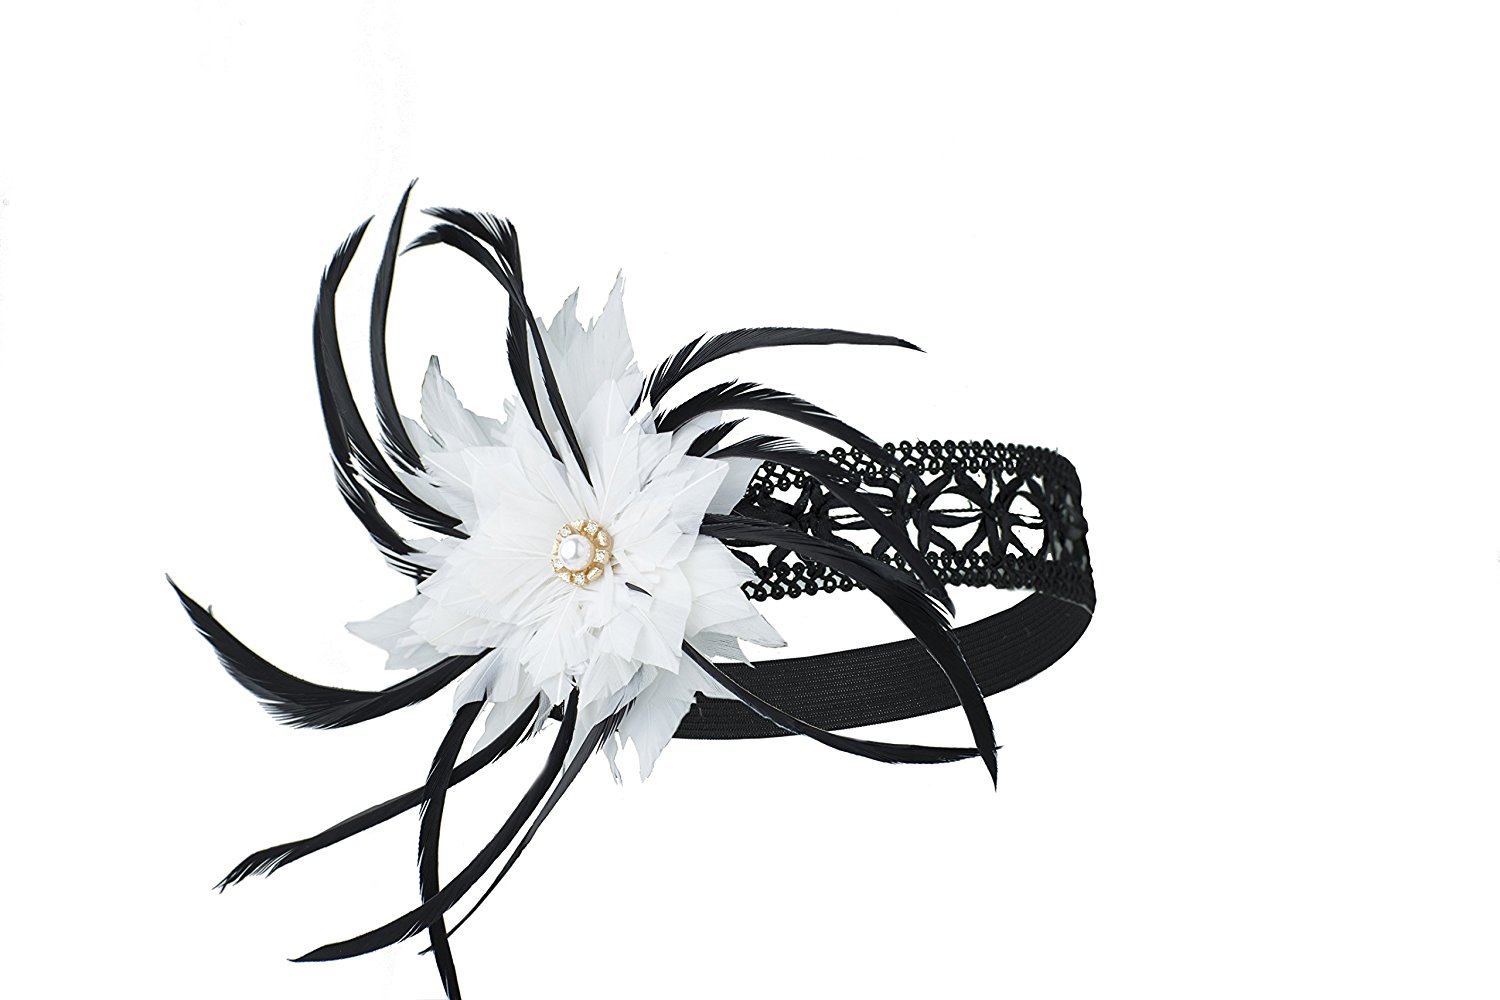 Cheap black white feather find black white feather deals on line at get quotations conifera headband elastic 1920s hollow white black feather flower with crystal glass stone for women mightylinksfo